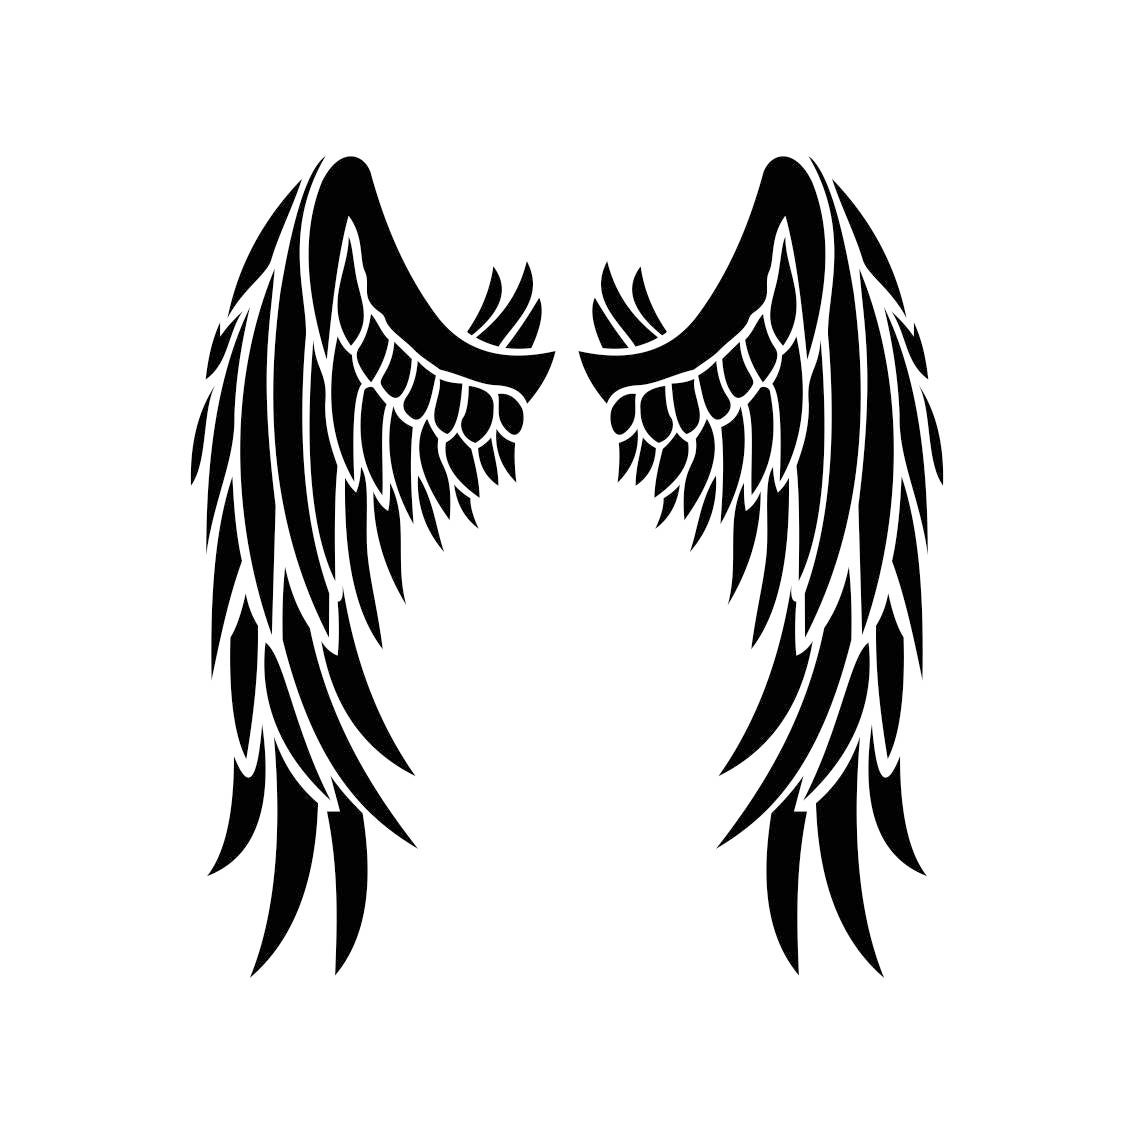 angel wings graphics svg dxf eps png cdr ai pdf vector art angel wings vector clip art angel wing tattoo vector